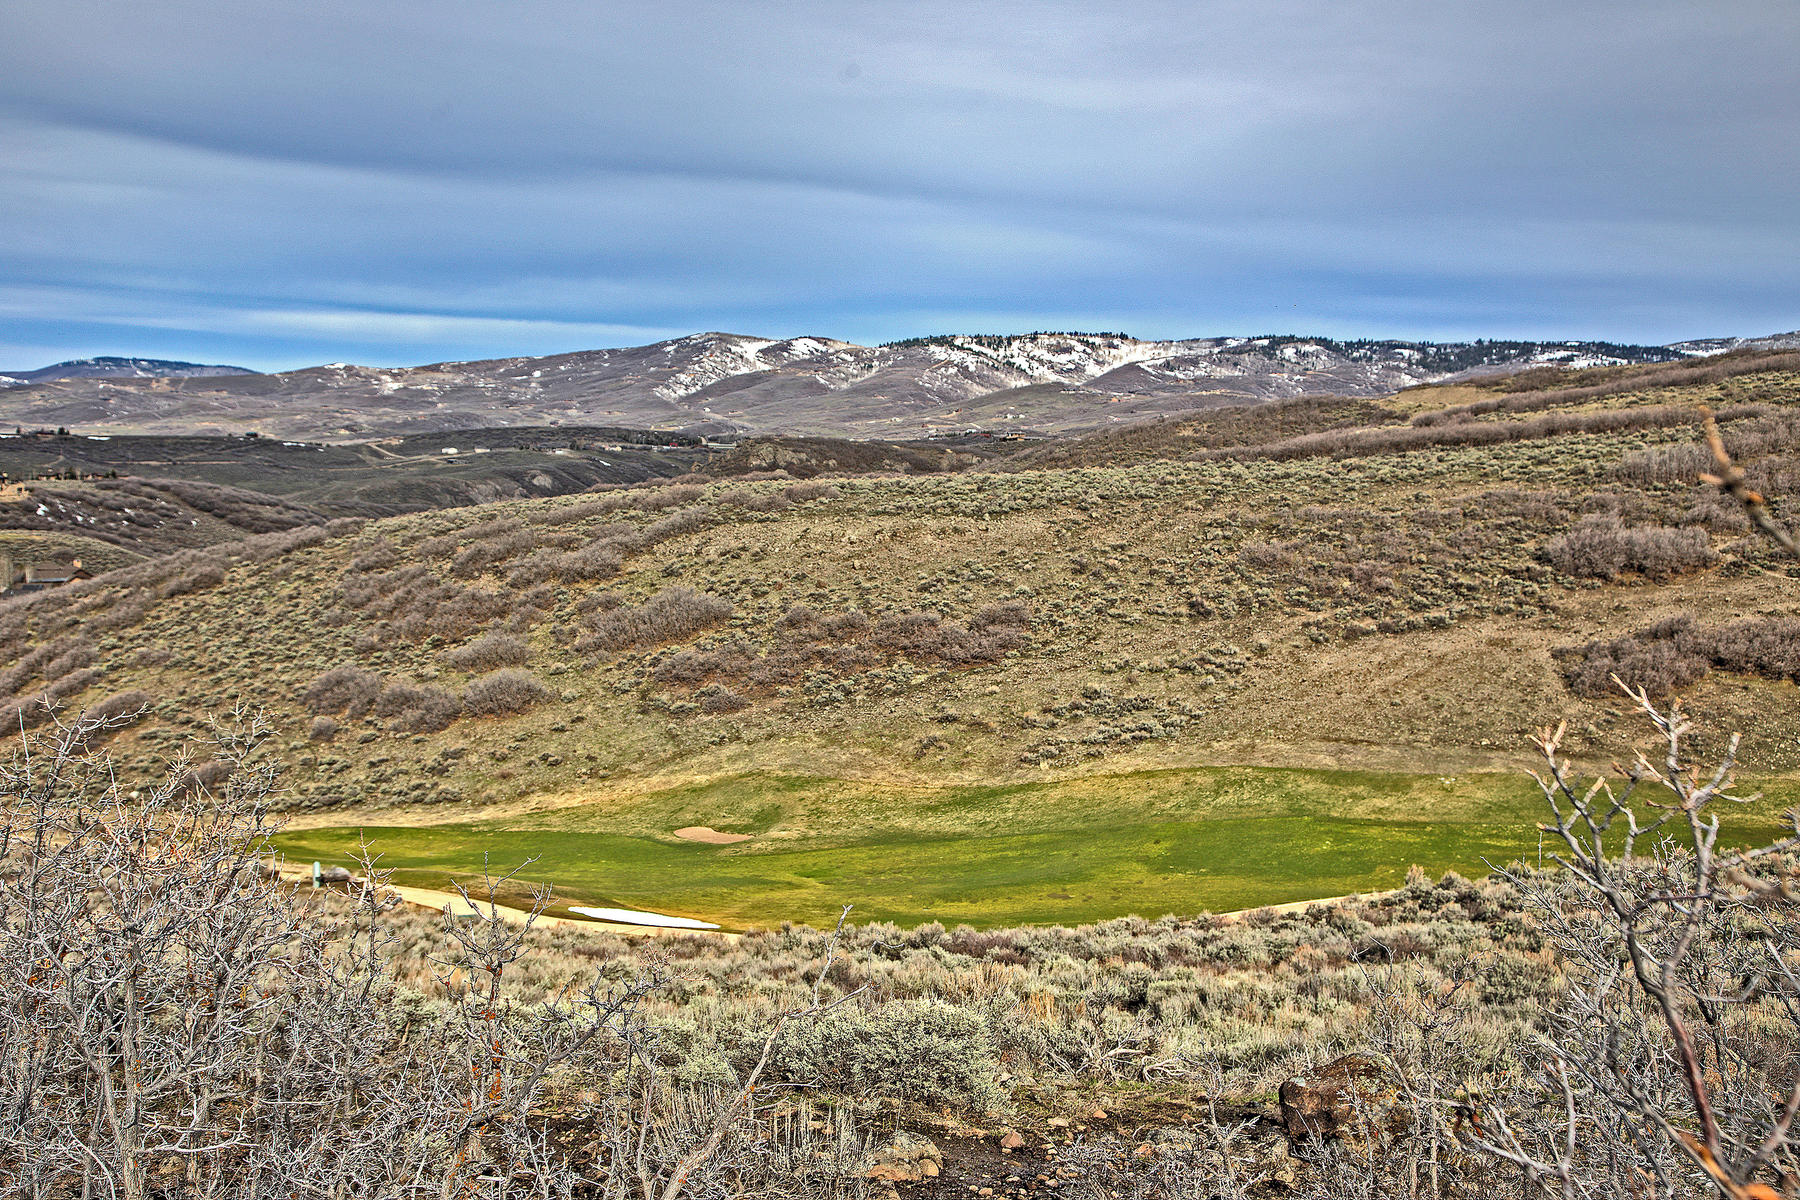 Land for Sale at Promontory Homesite In The Heart Of It All 8147 N Ranch Garden Rd Lot 80 Park City, Utah, 84098 United States